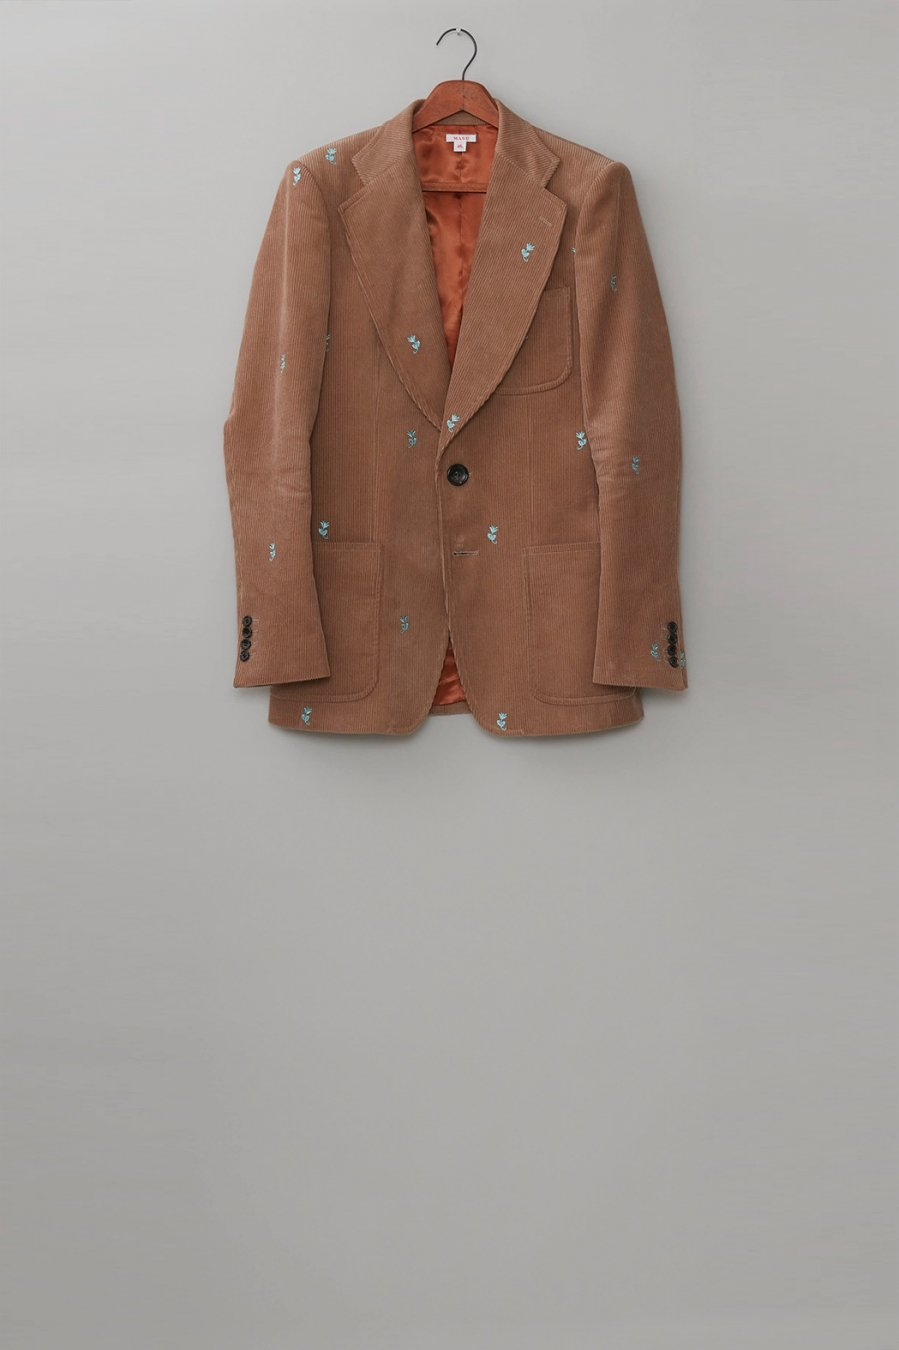 MASU  WIDE LAPEL TAILORED JACKET(BEIGE)<img class='new_mark_img2' src='https://img.shop-pro.jp/img/new/icons15.gif' style='border:none;display:inline;margin:0px;padding:0px;width:auto;' />